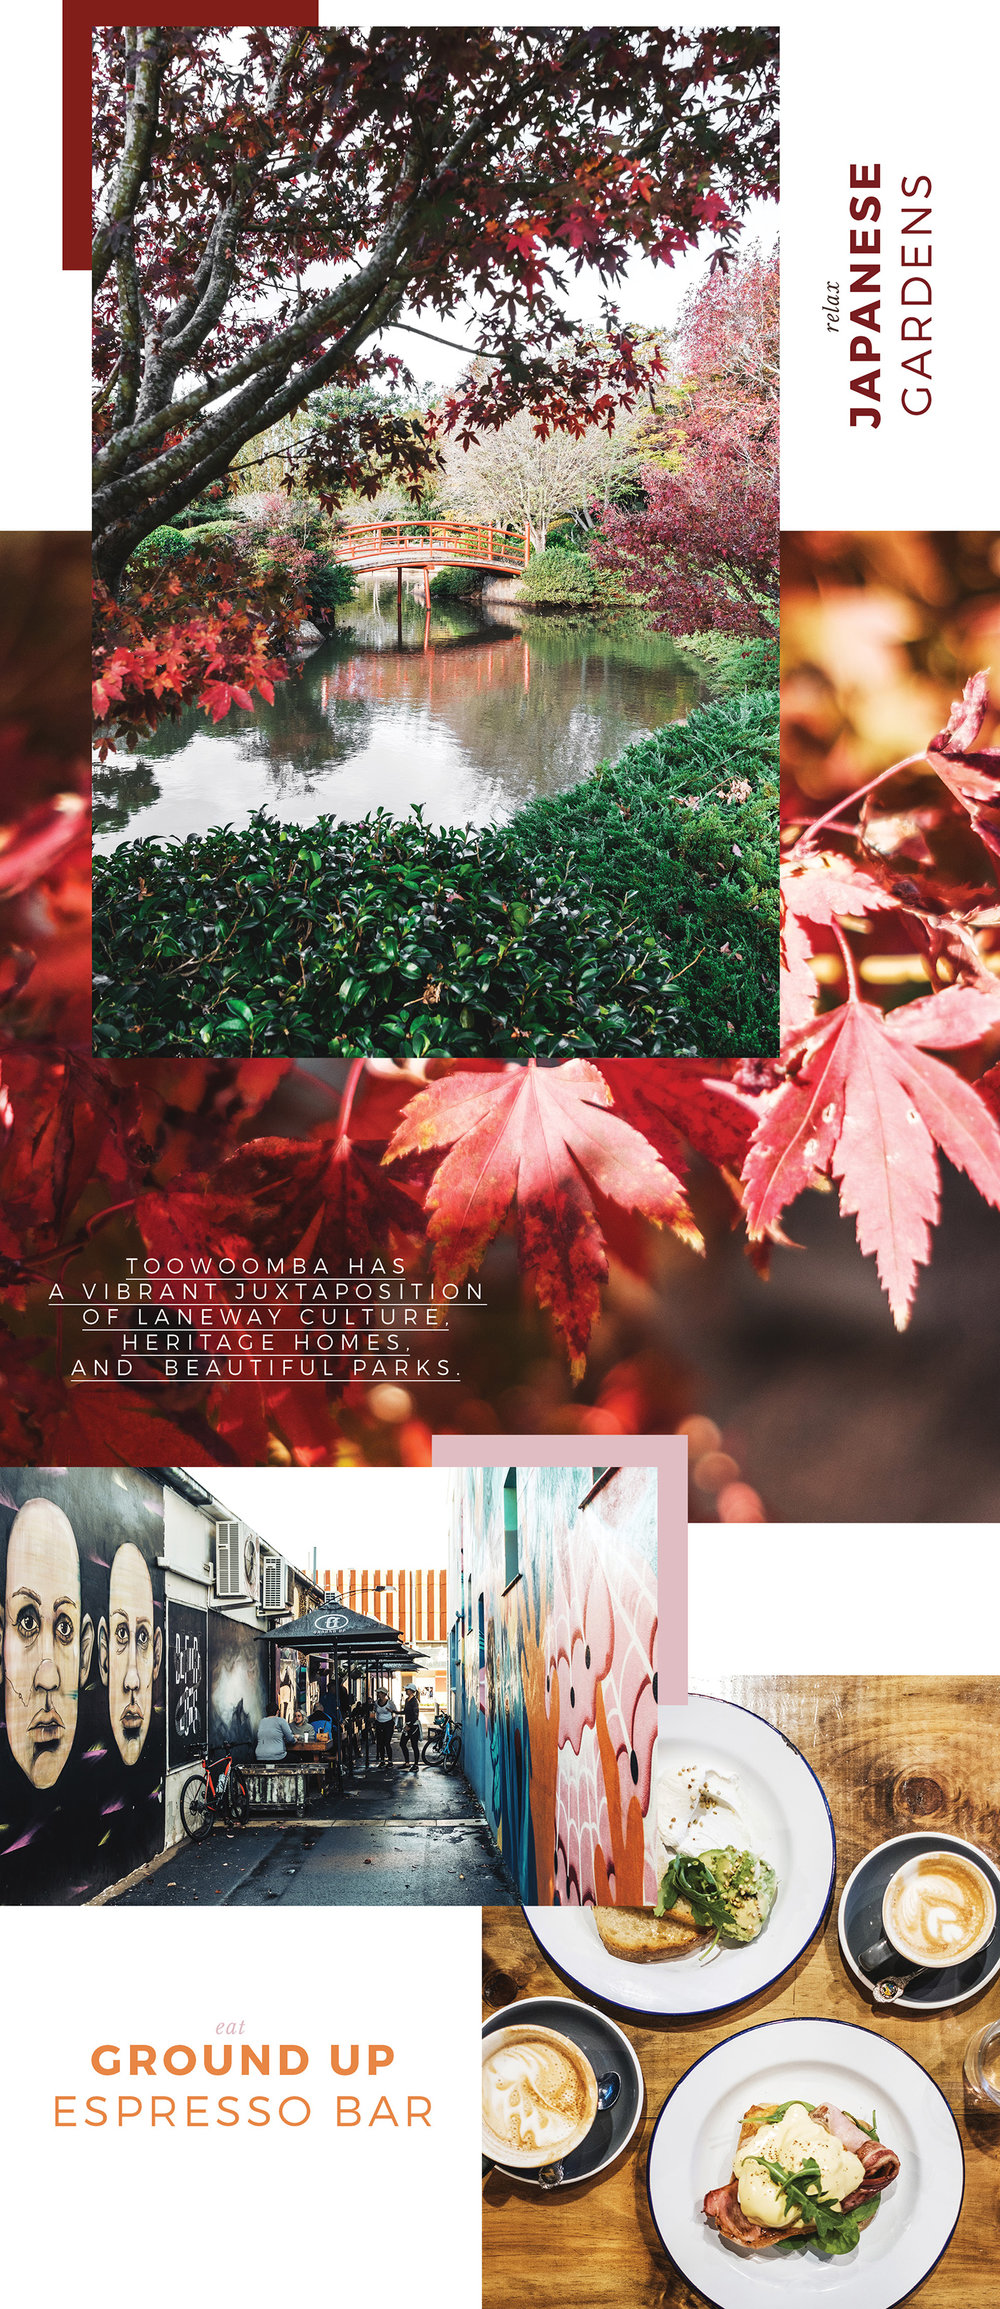 adore_home_blog_TOOWOOMBA_CITY_GUIDE_japanese_gardens_USQ_ground_up_espresso_bar_cafe_laneway_culture_street_art.jpg